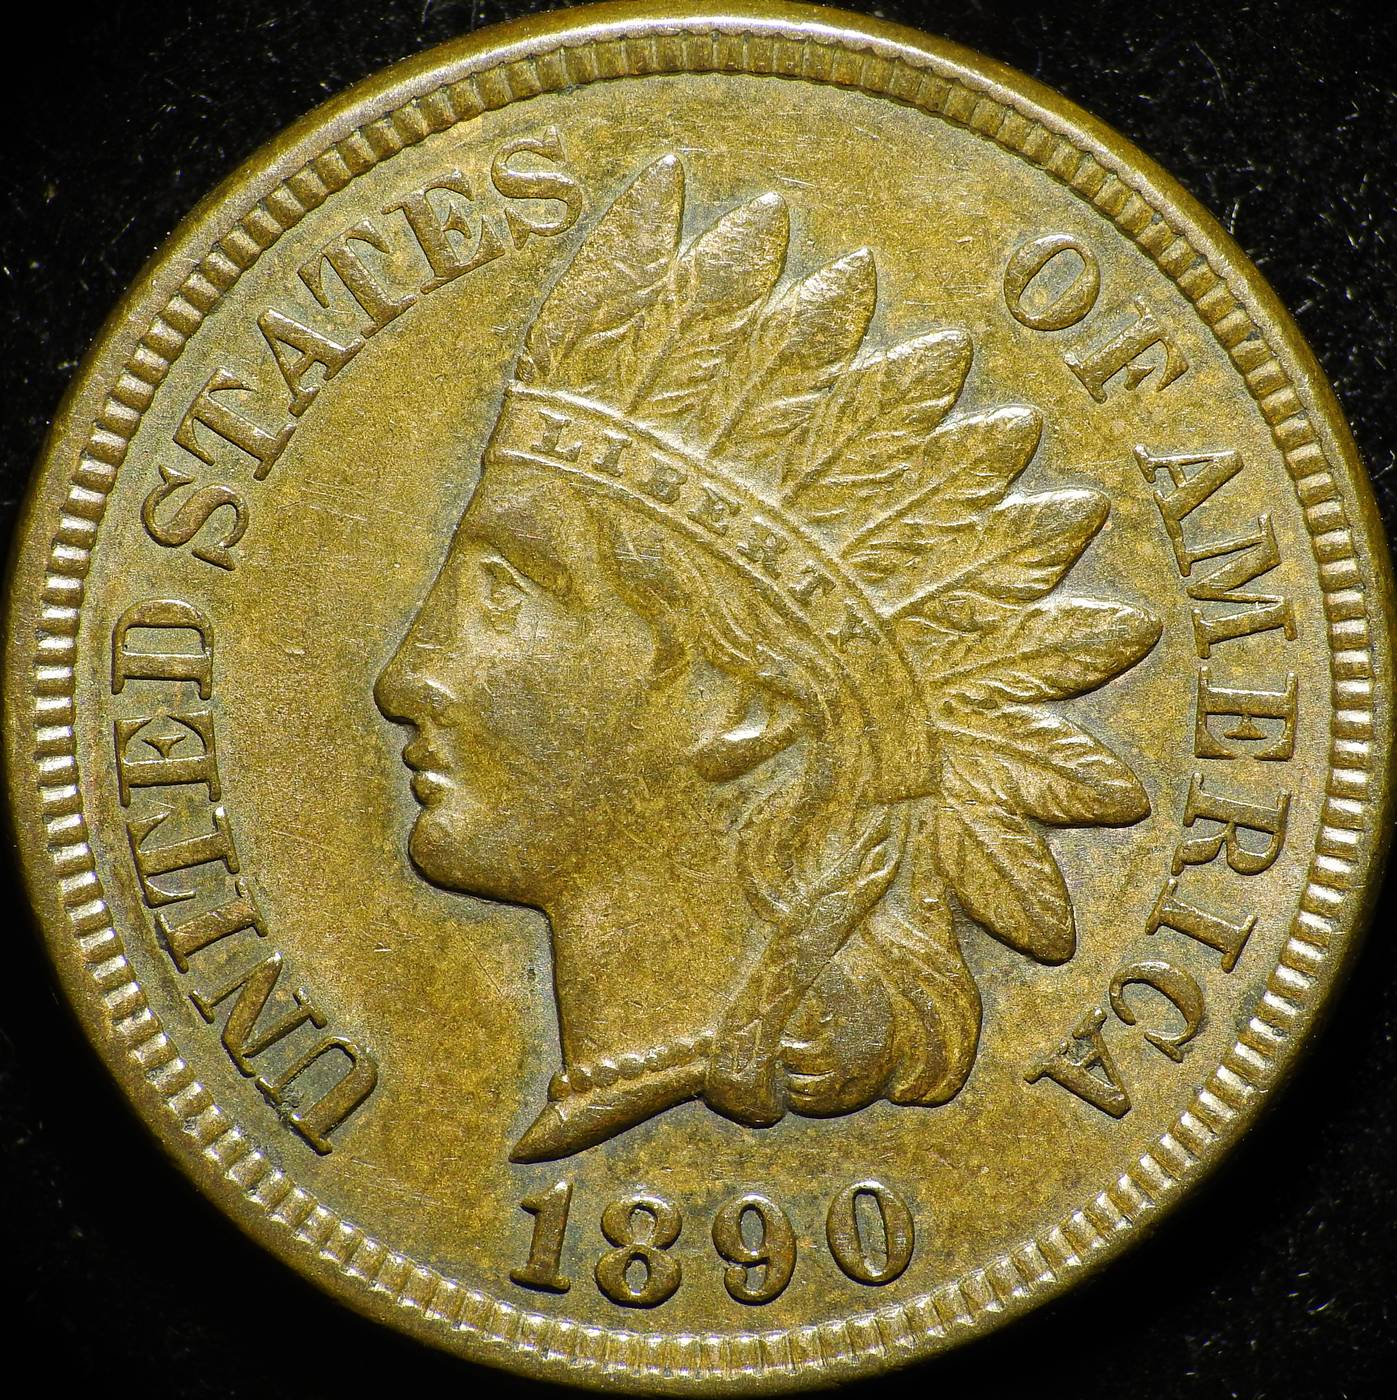 1890 Obverse of CUD-002 - Indian Head Penny